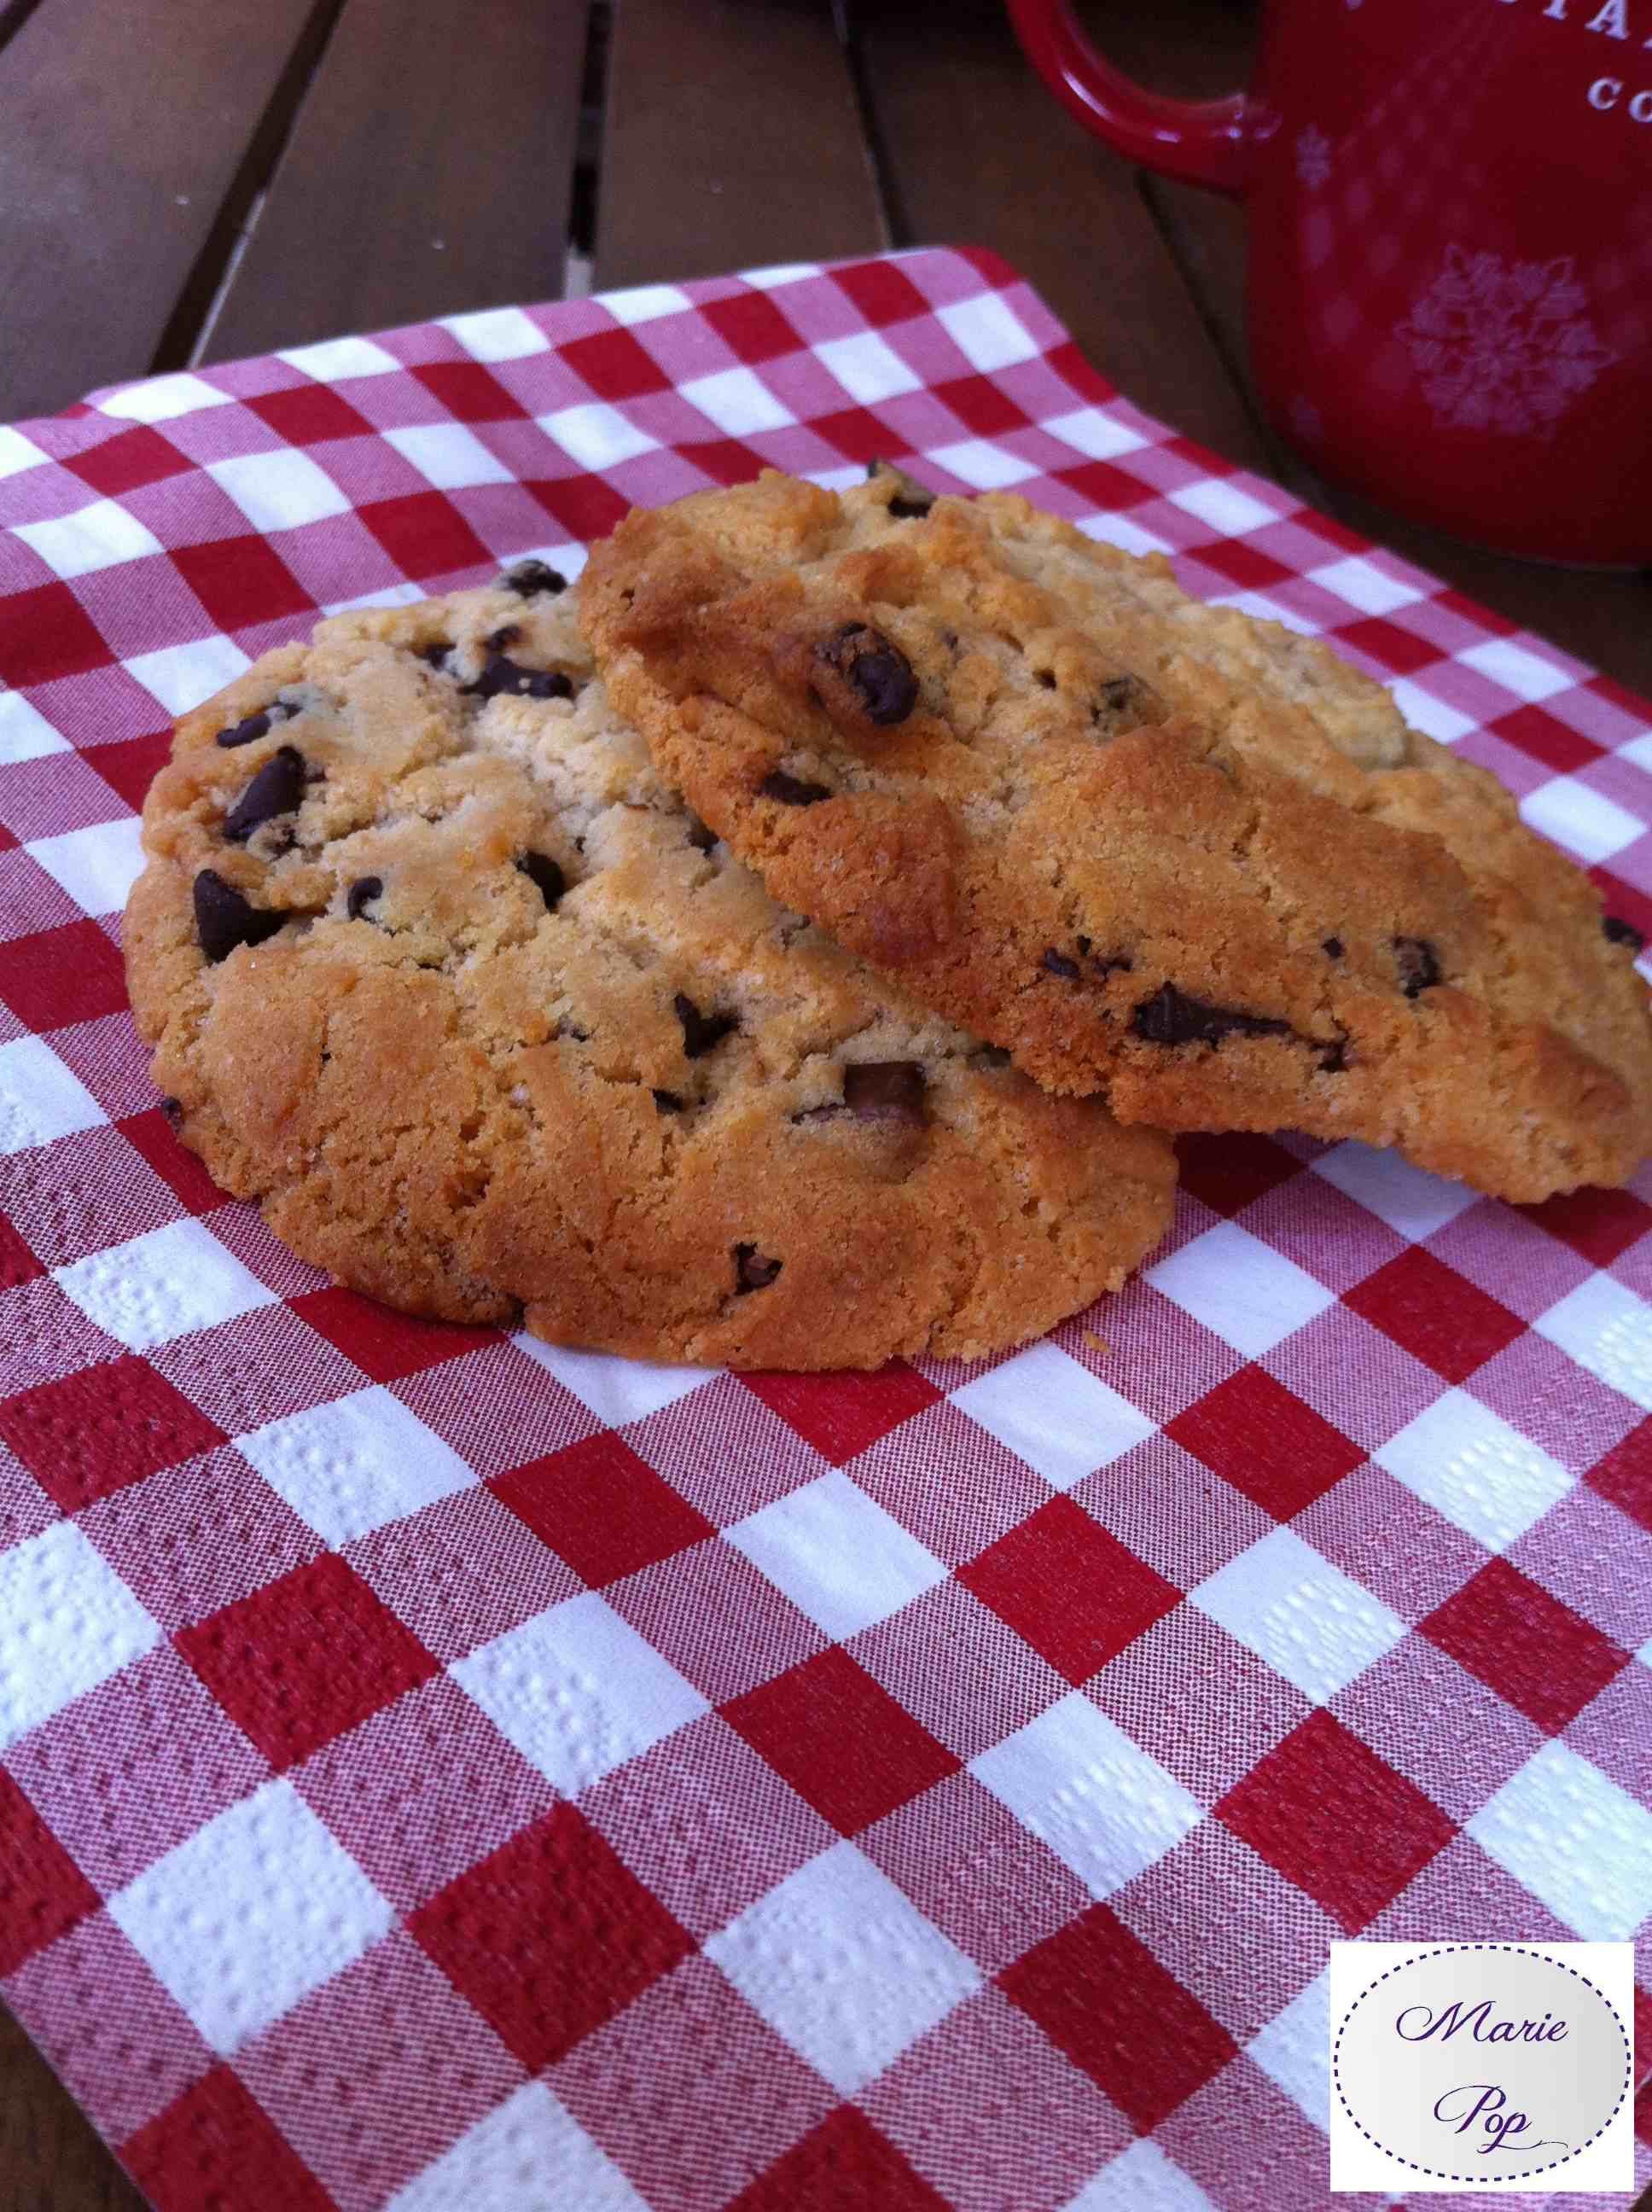 Chocolate Chip Cookies - la recette